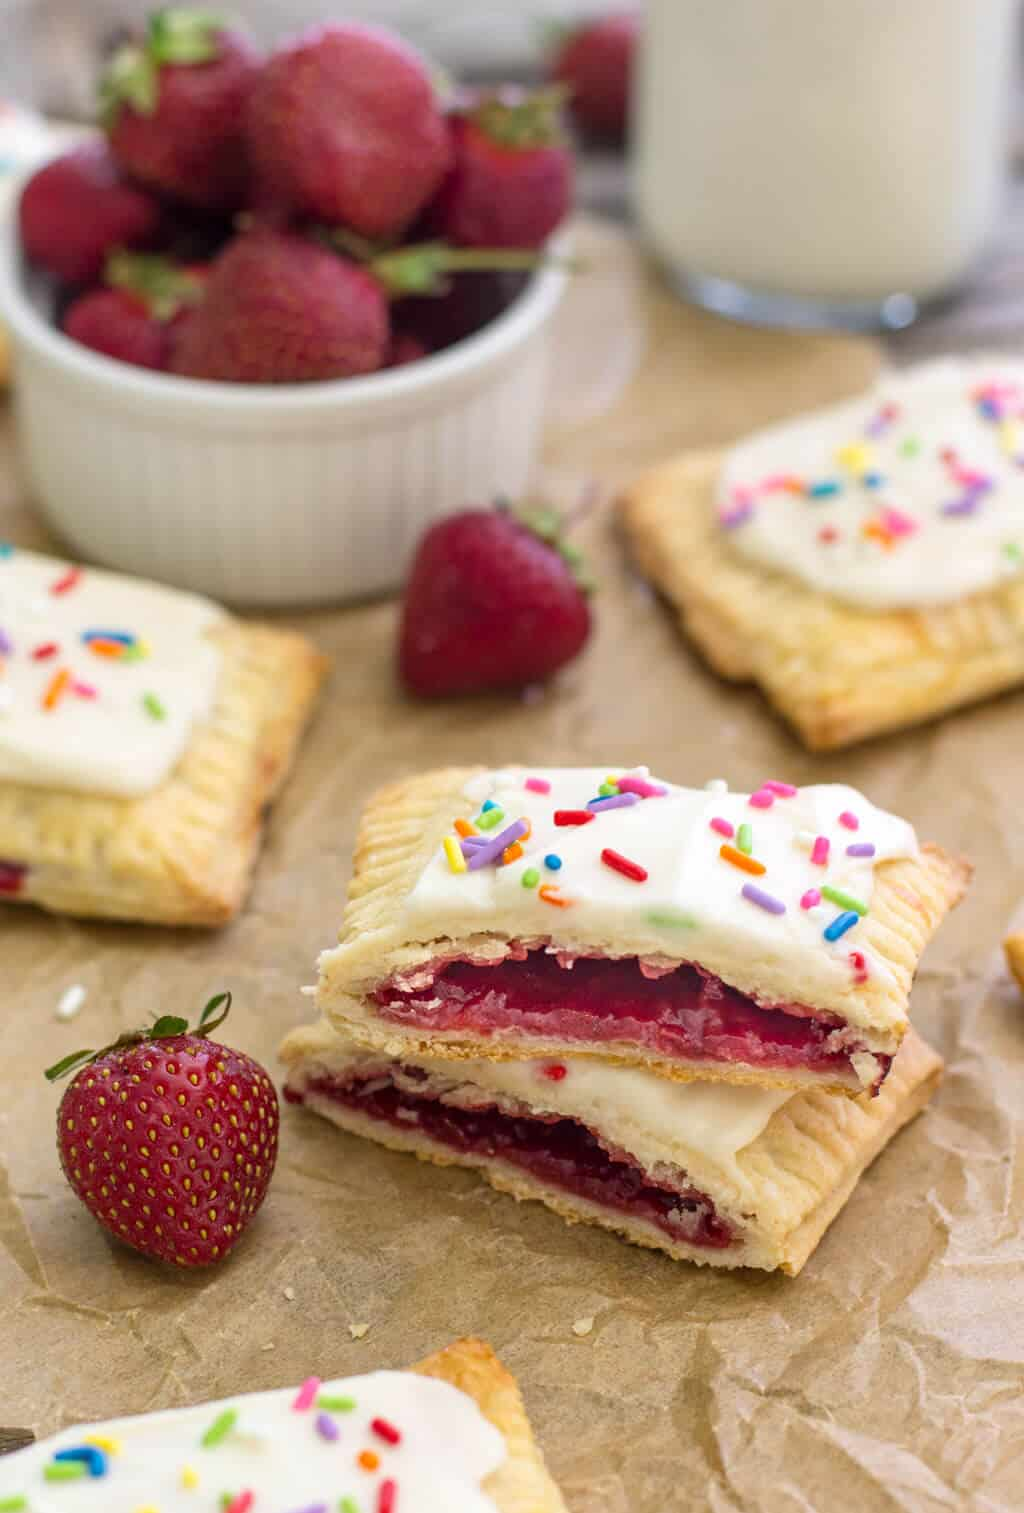 Homemade Strawberry Pop Tart cut in half to show strawberry center